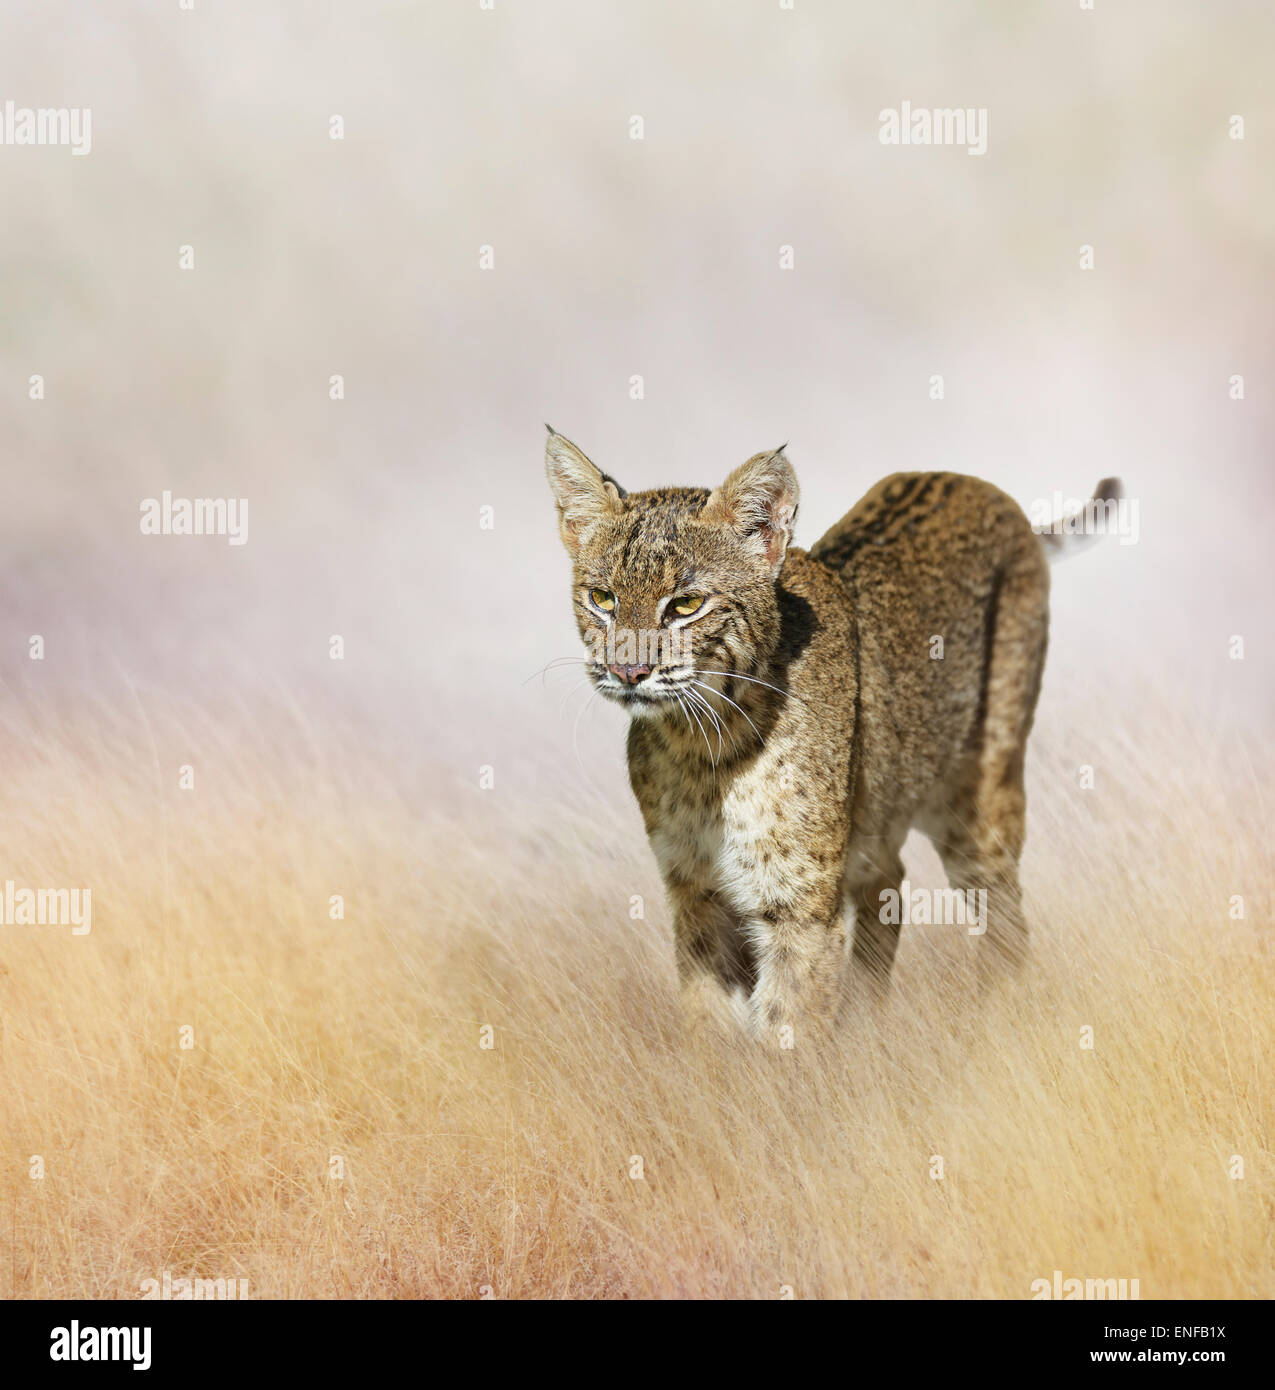 Bobcat Walking In The Grass - Stock Image